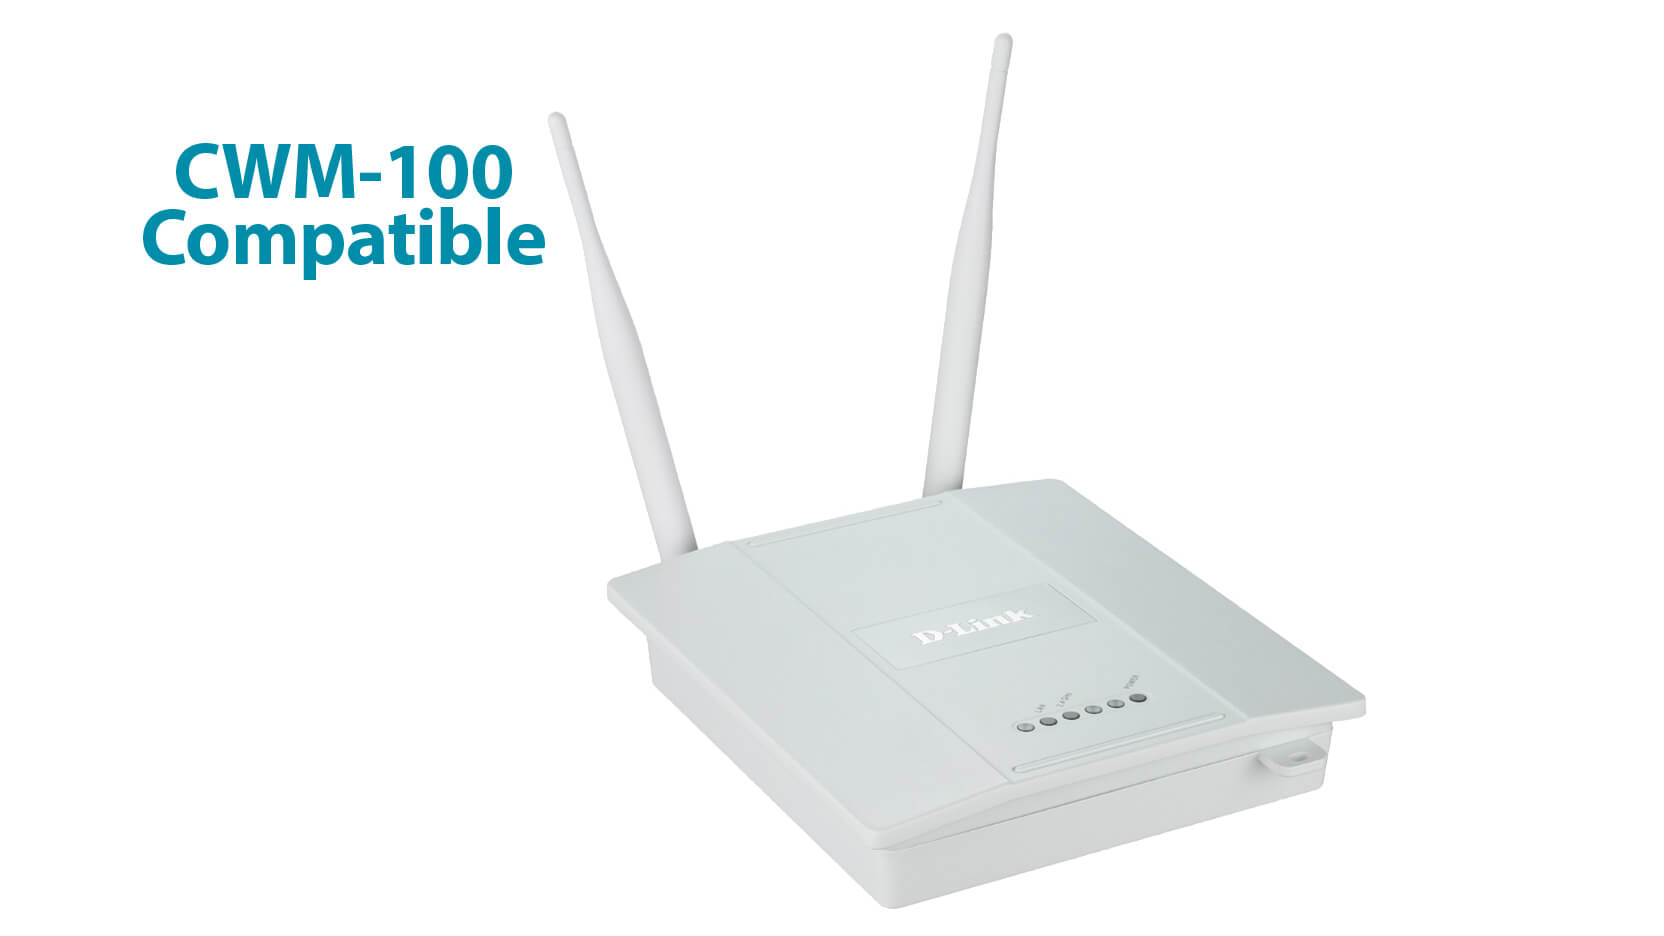 DAP-2360/EAU Wireless N PoE Access Point